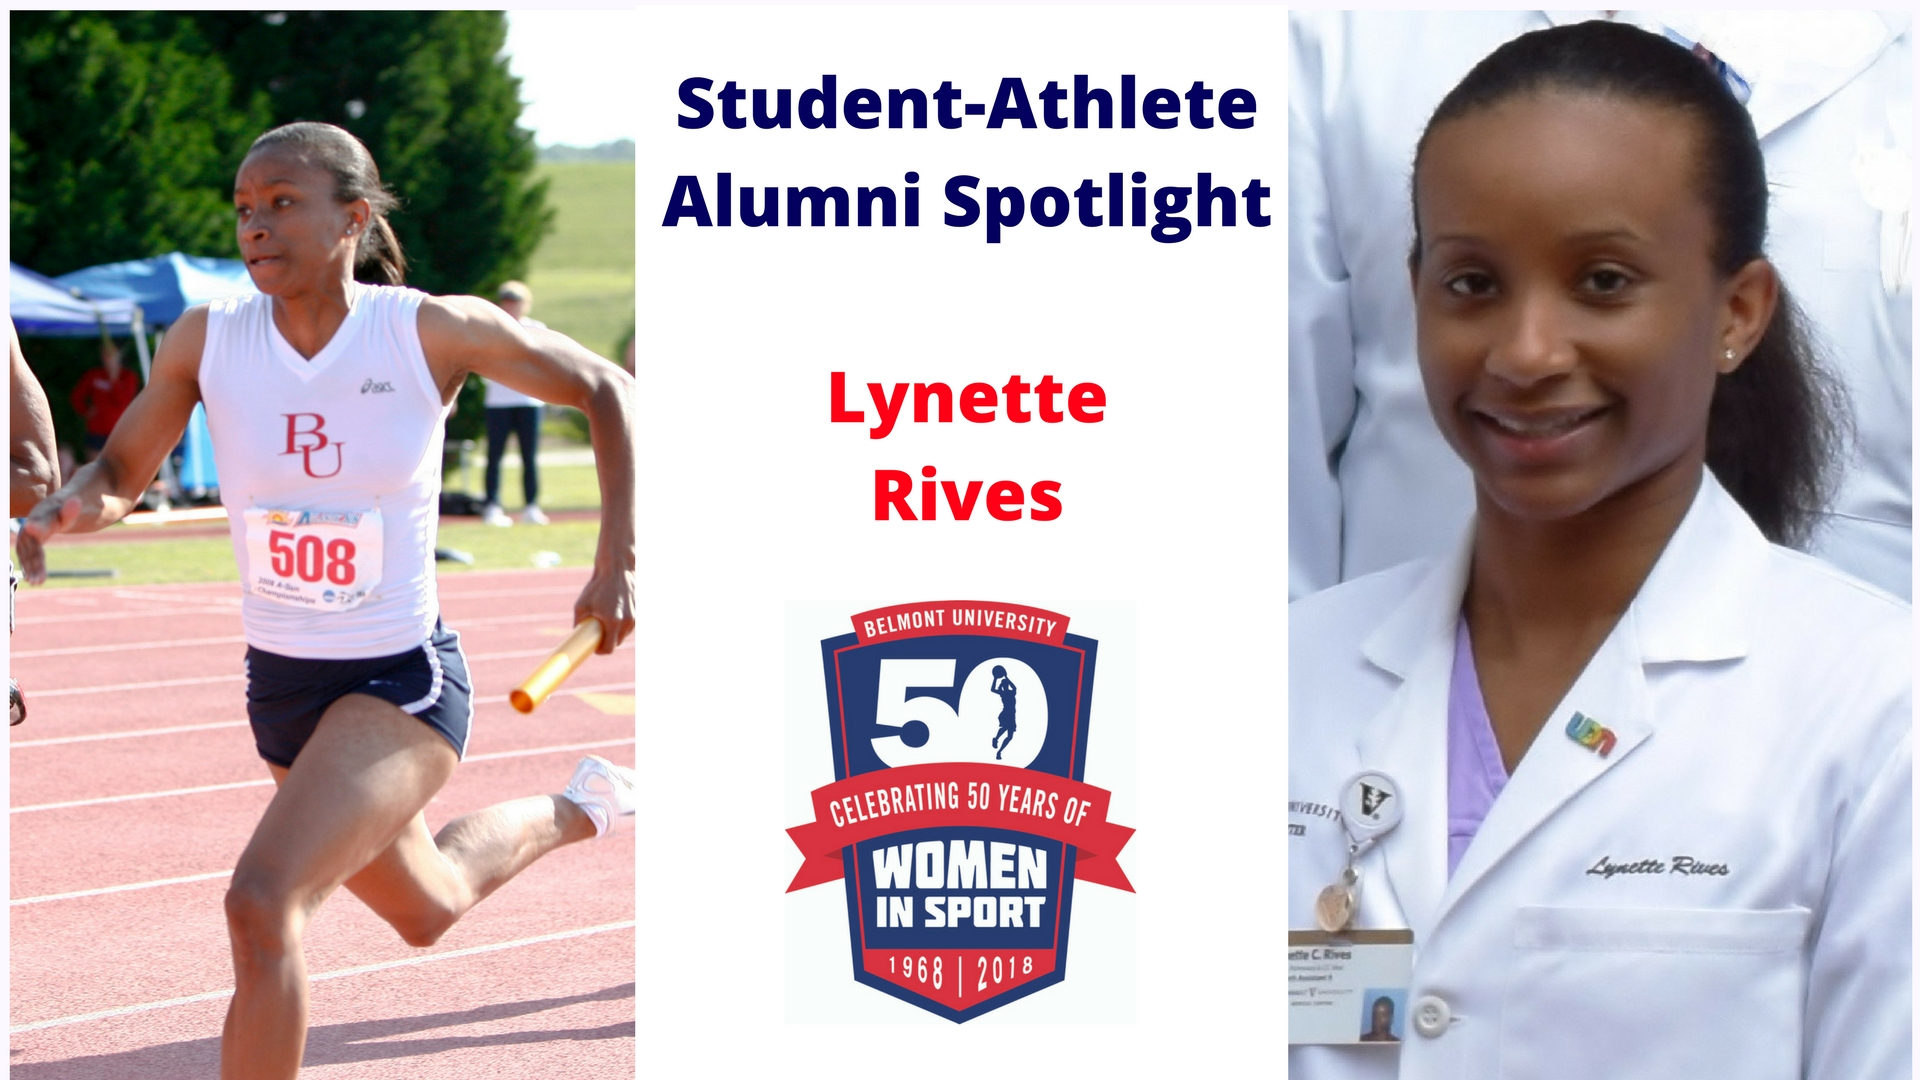 Student-Athlete Alumni Spotlight -- Lynette Rives